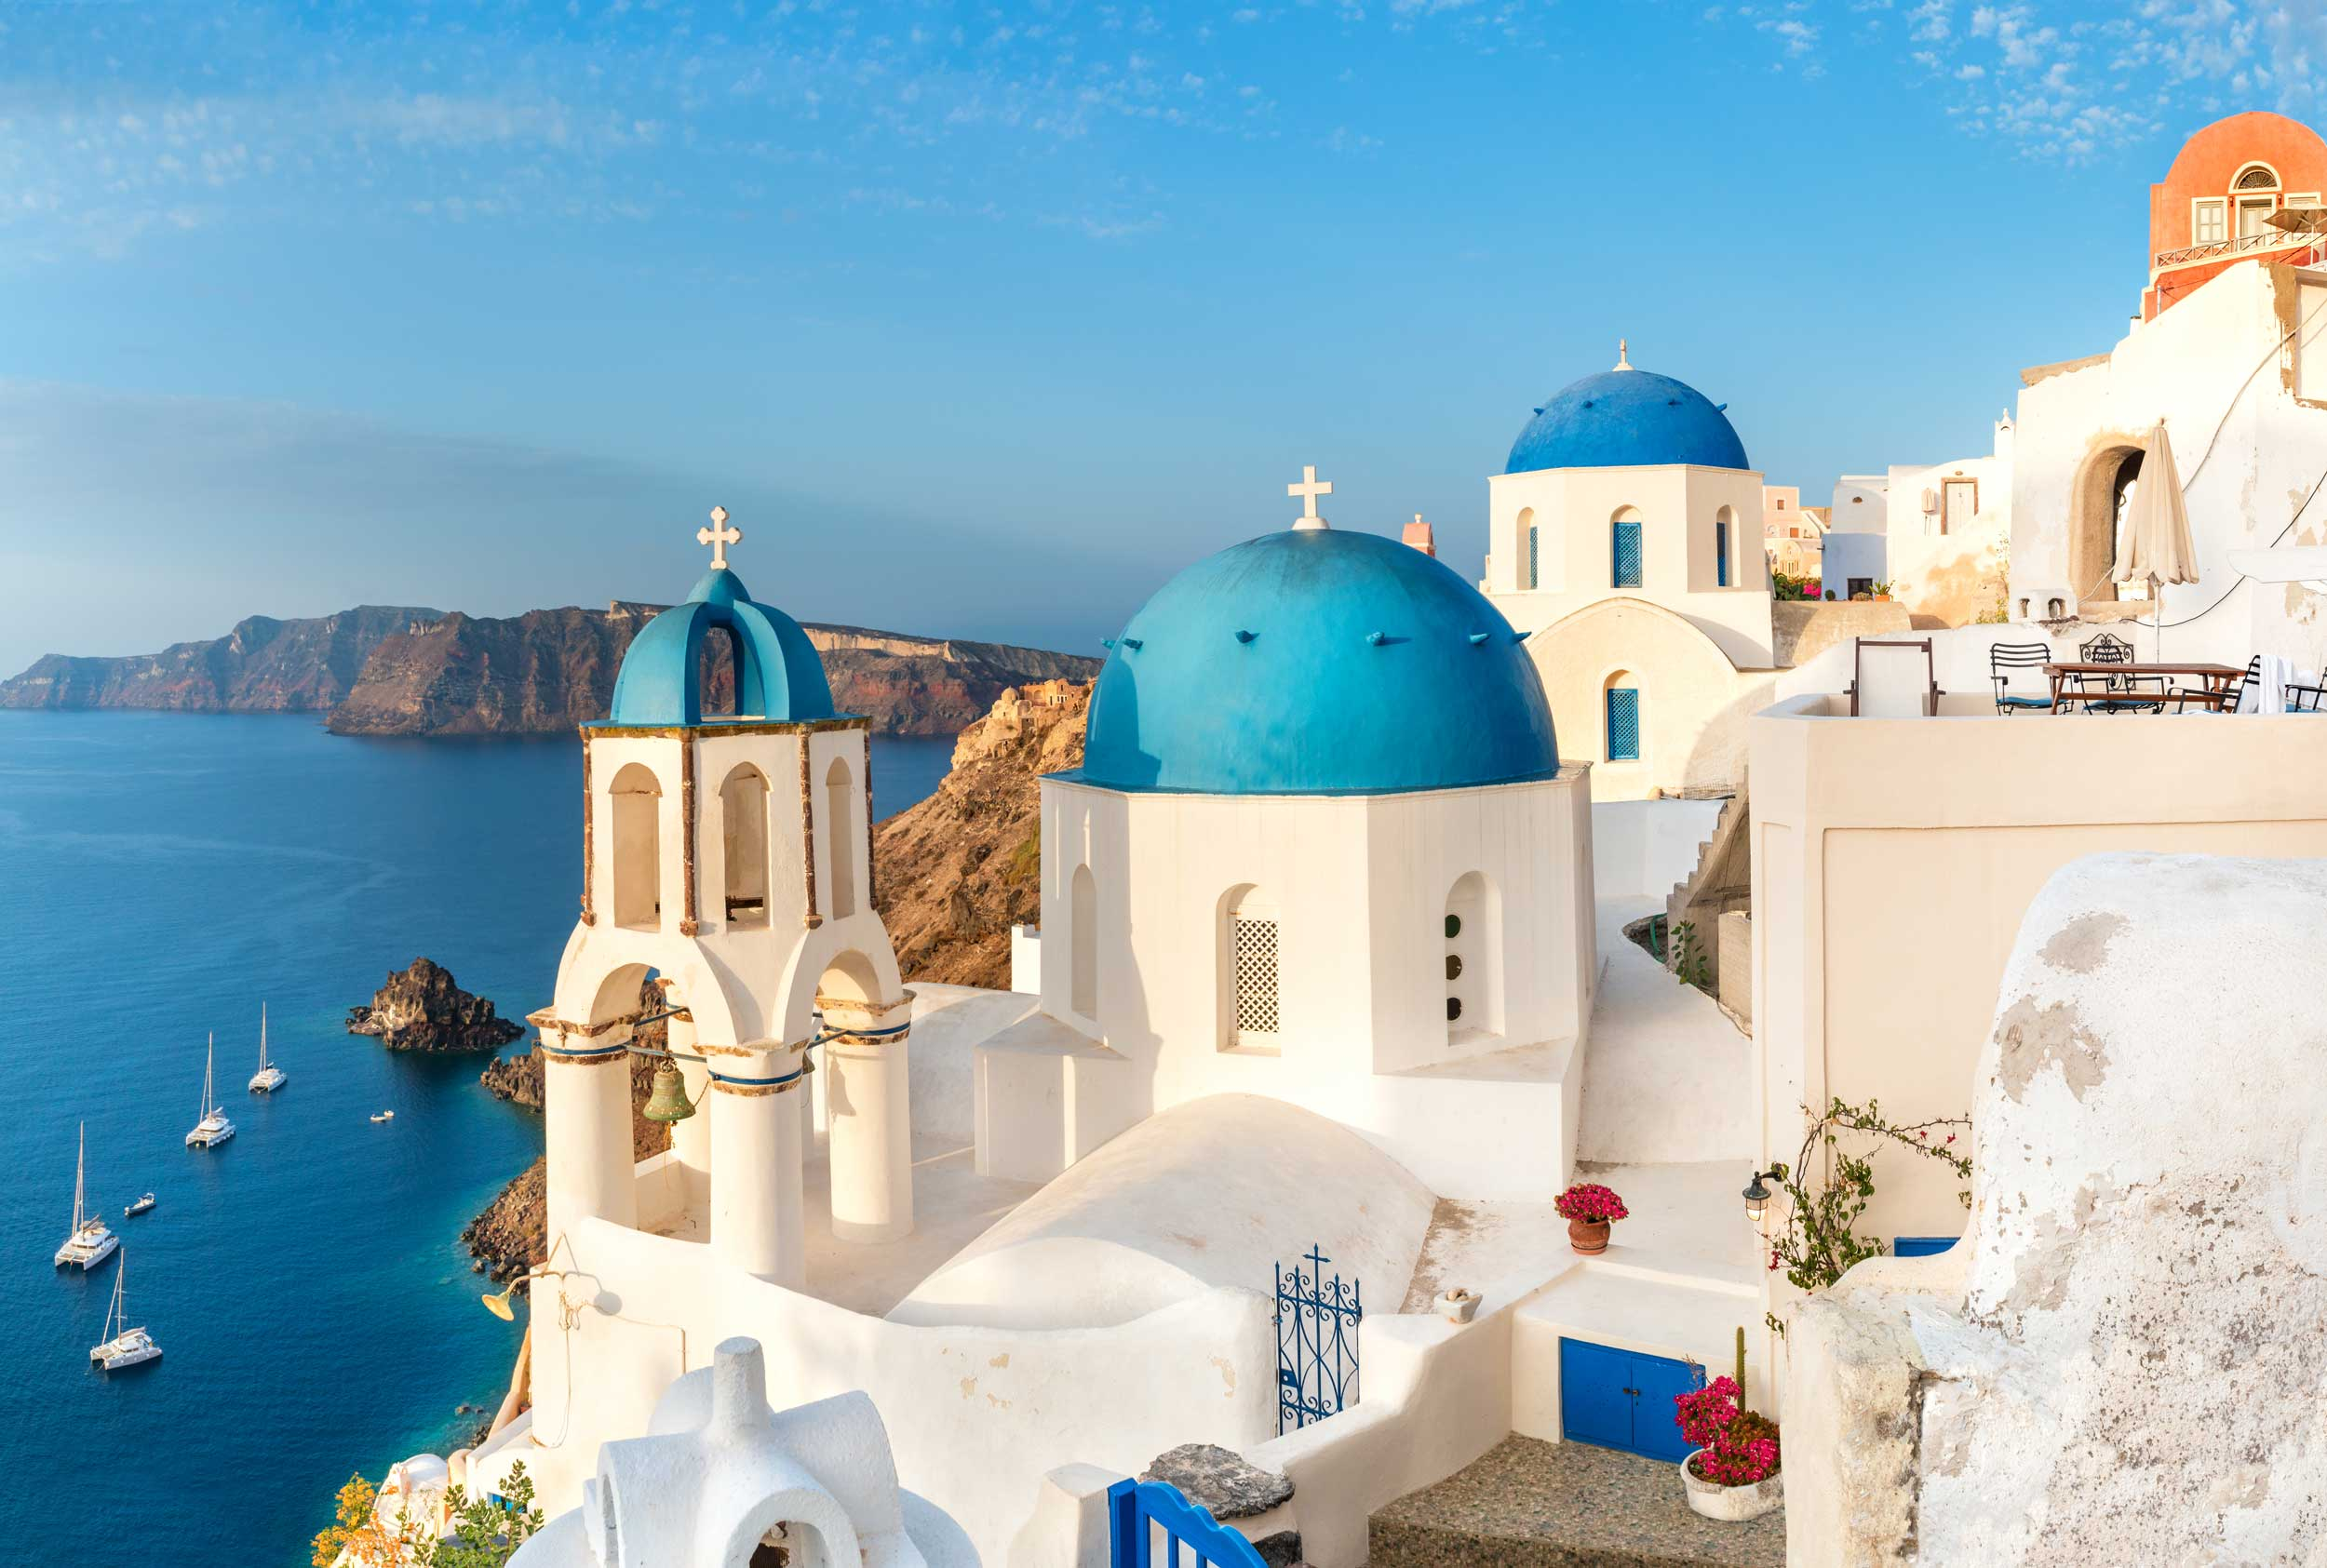 Three blue domes and white cuboid houses above a blue sea with boats below and islands in the distance, Greece